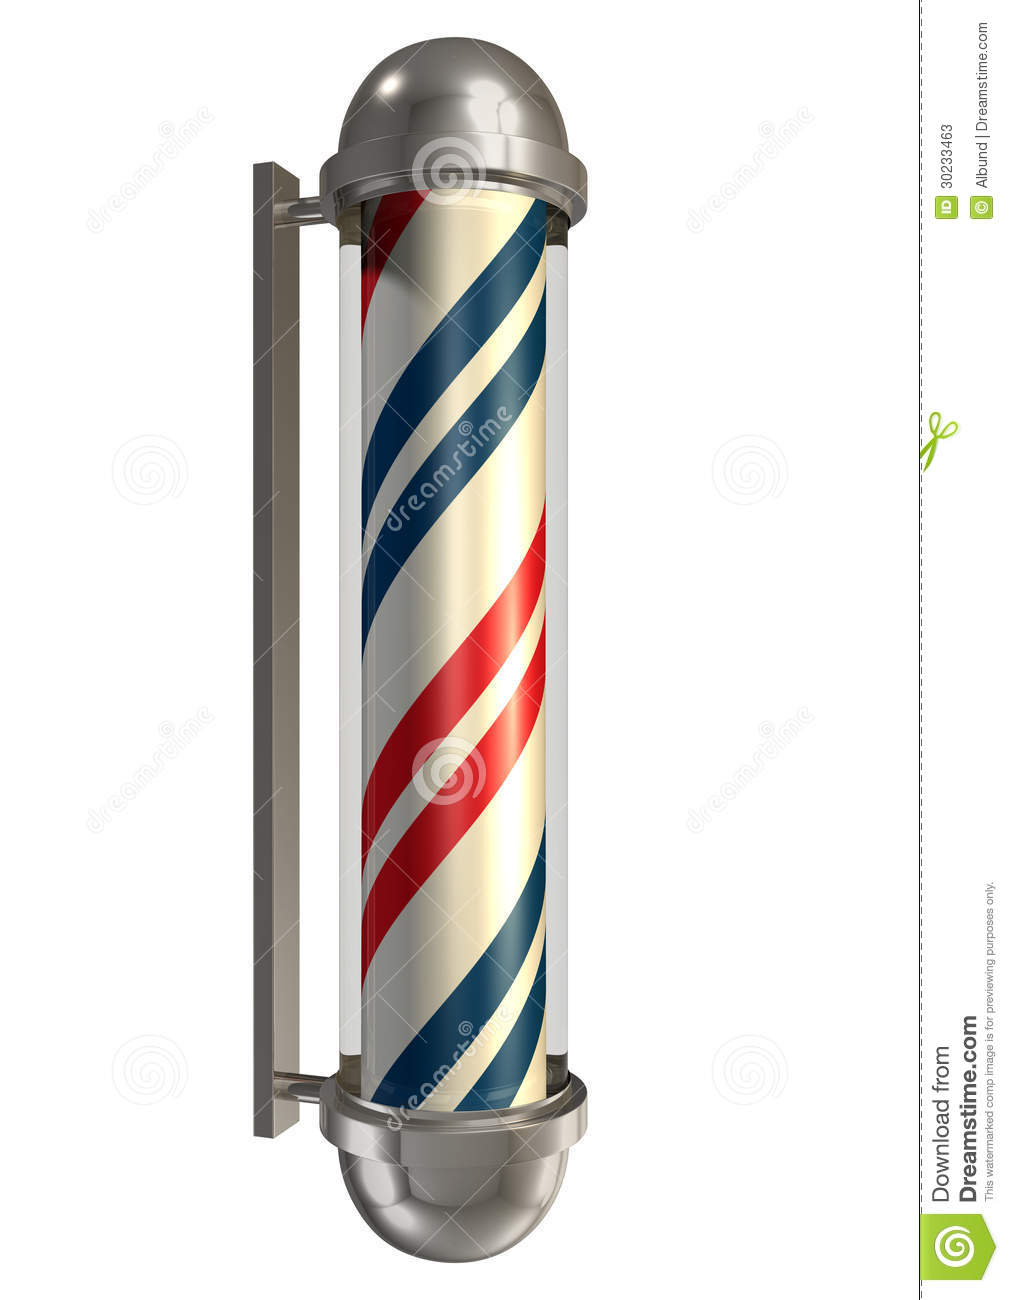 Regular vintage barbers pole in chrome blue white and red on an